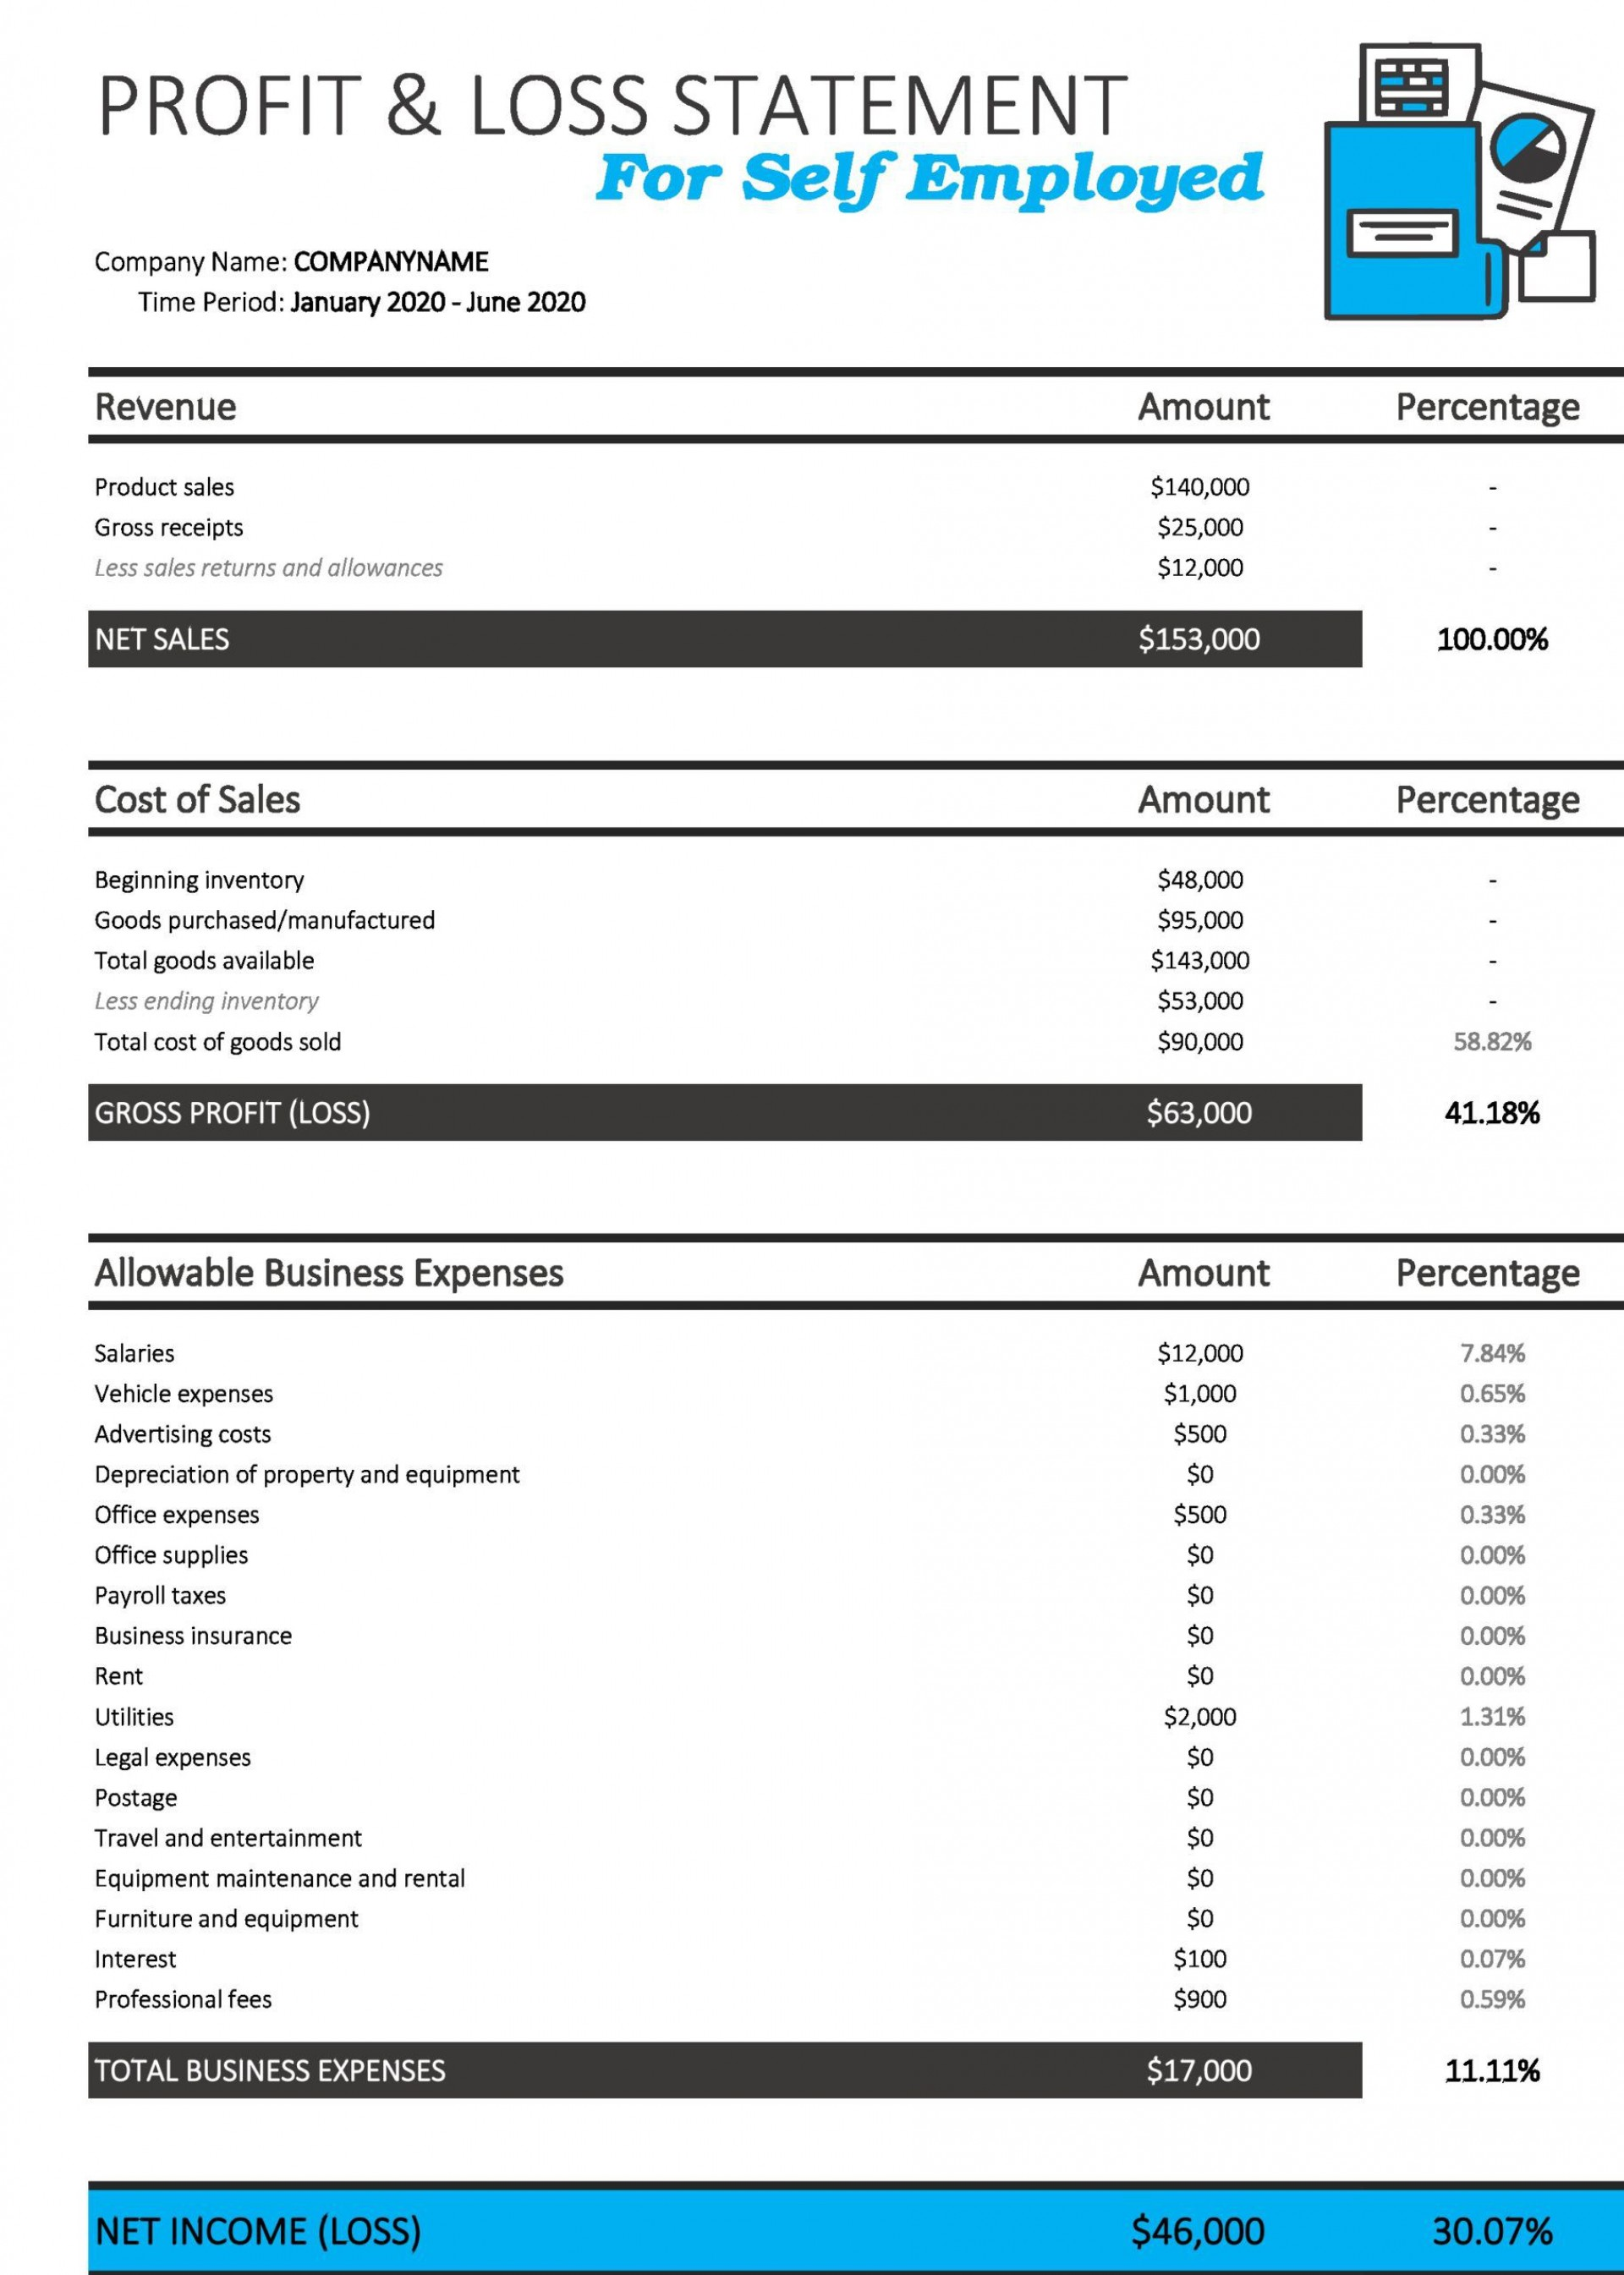 006 Singular Simple Profit And Los Statement Template For Self Employed Highest Quality  Free1920